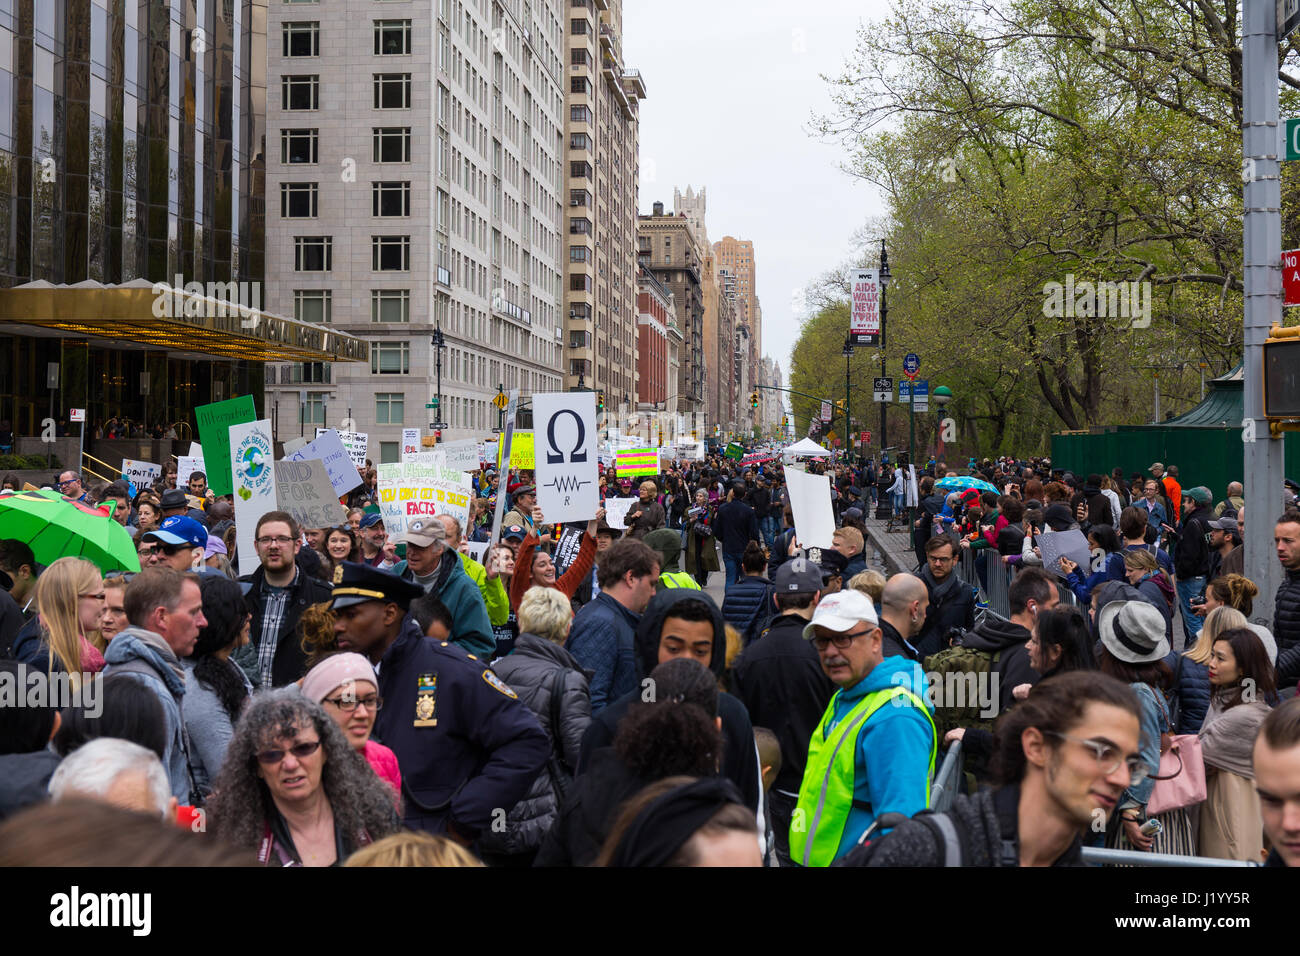 New York, USA. 22nd April, 2017. With many holding signs, the procession of the March For Science passes in front Stock Photo